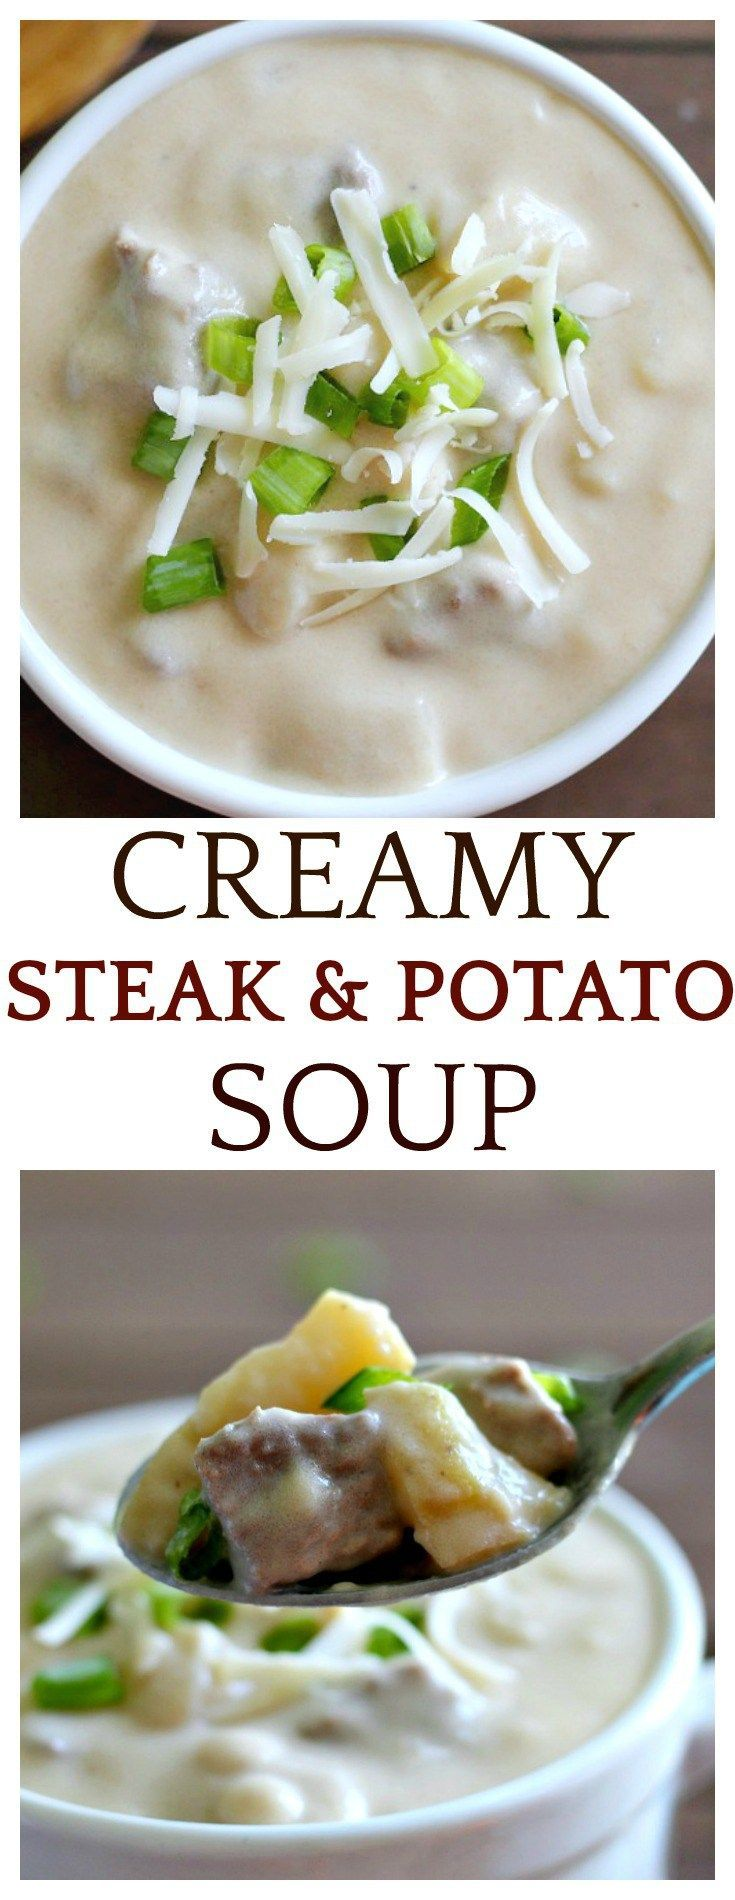 This Creamy Steak and Potato Soup is the perfect Fall comfort food recipe! It's hearty, filling, and delicious! Have it when you need a filling lunch, or pair it with a salad for an easy dinner!